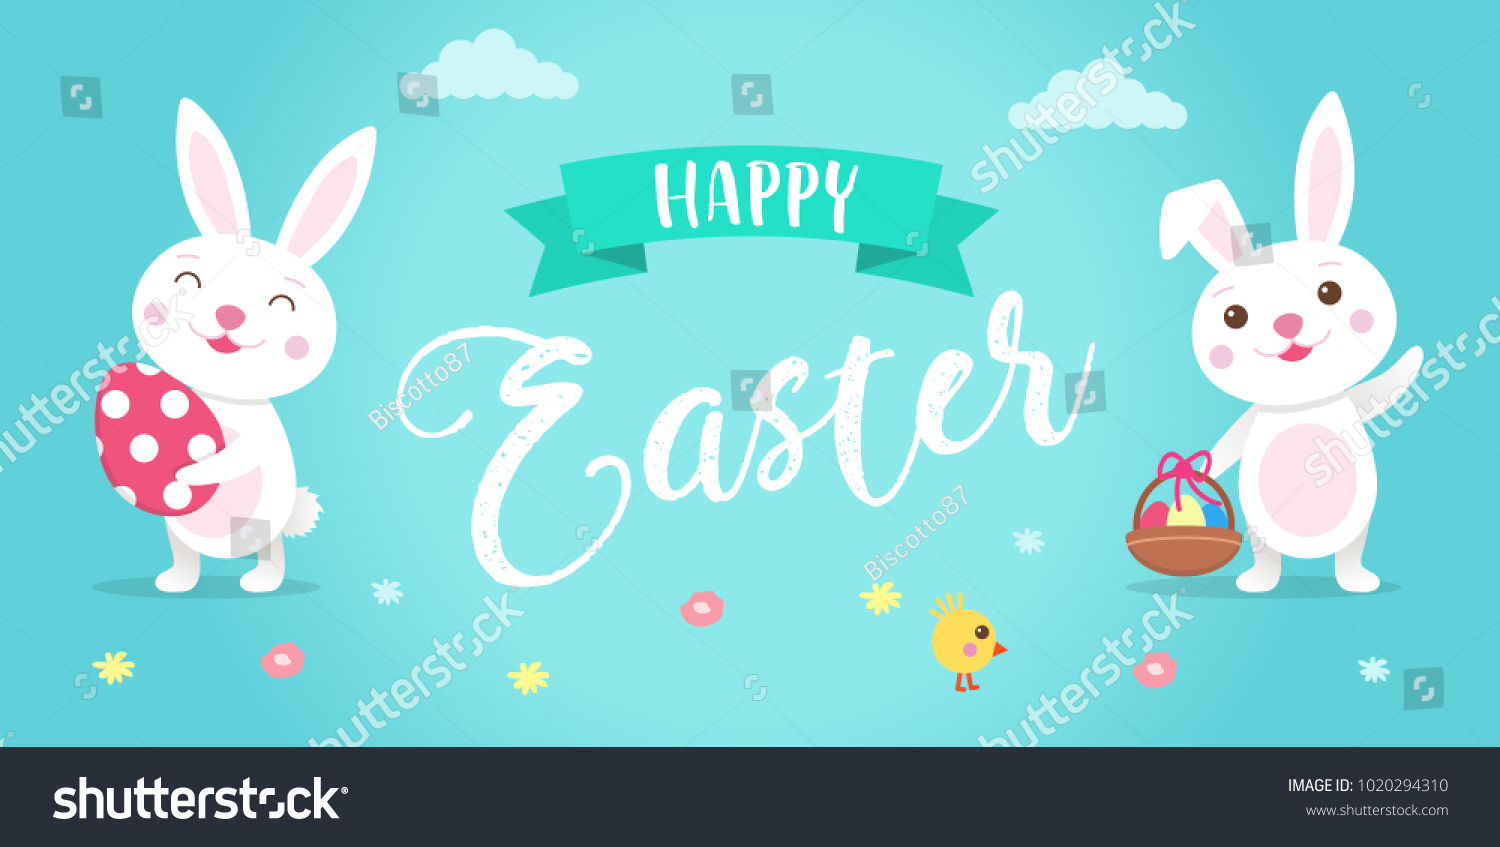 Happy Easter Illustration With Cute Cartoon Easter Bunny Eggs